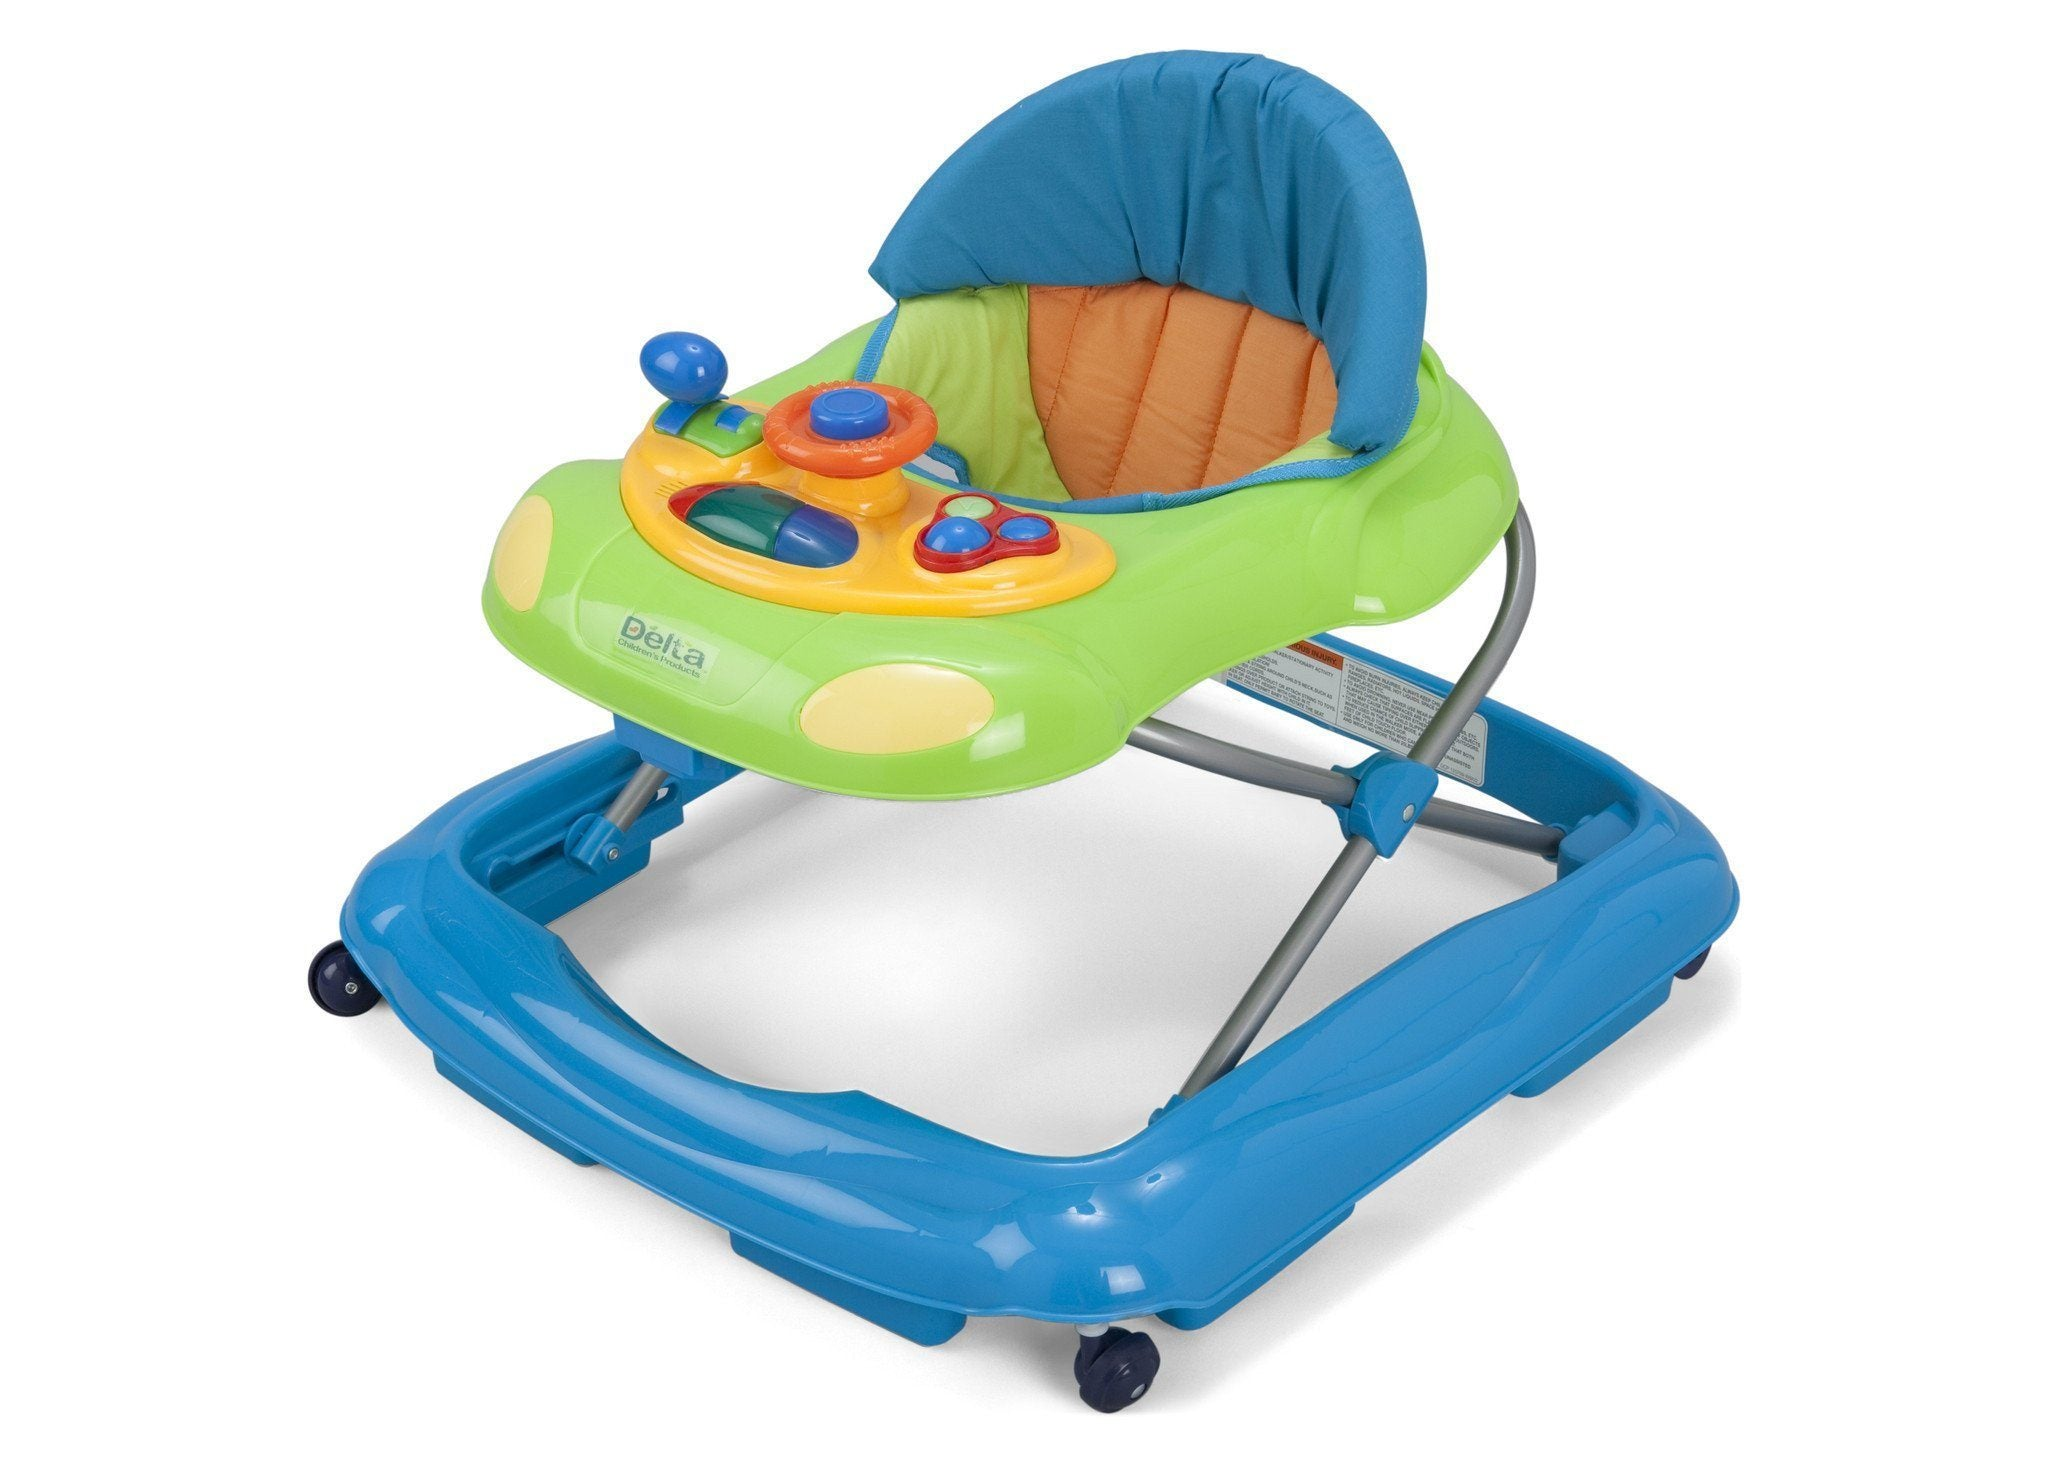 Delta Children Blue (456) Lil' Fun Walker Left Side View 1 b1b